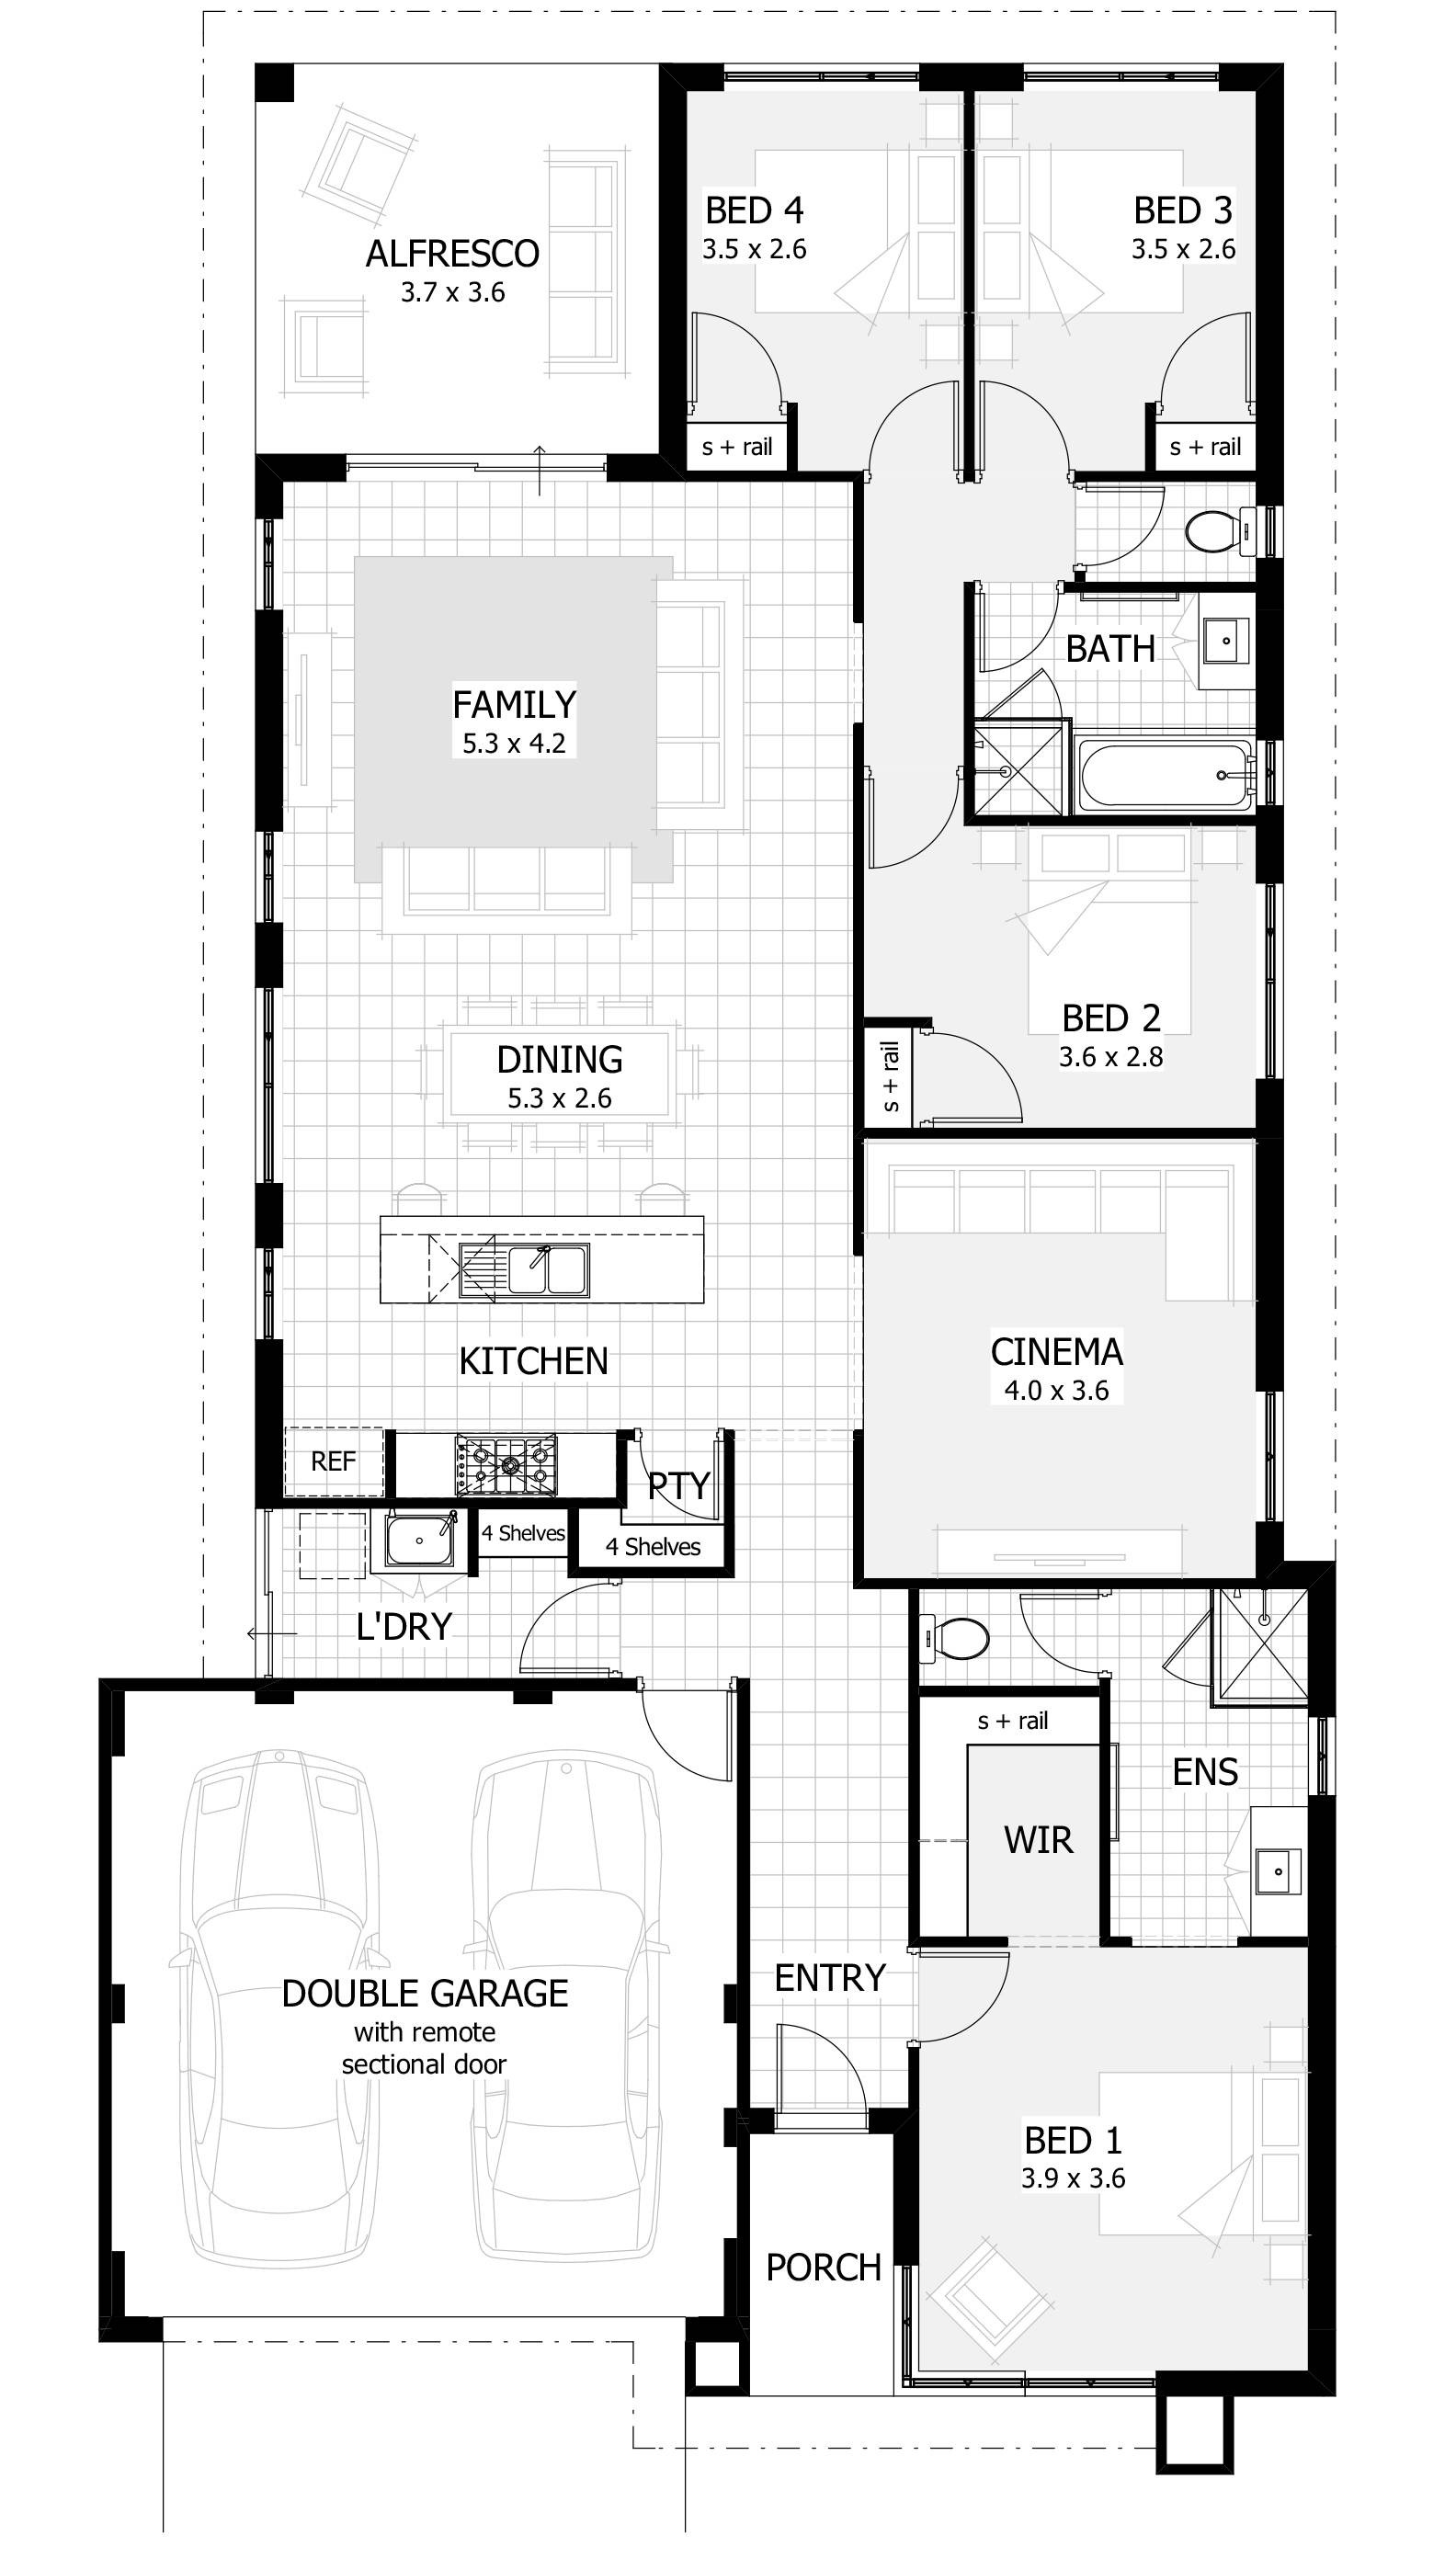 Small Lot House Plans Unique Story House Plans Narrow Lot Small House Plans